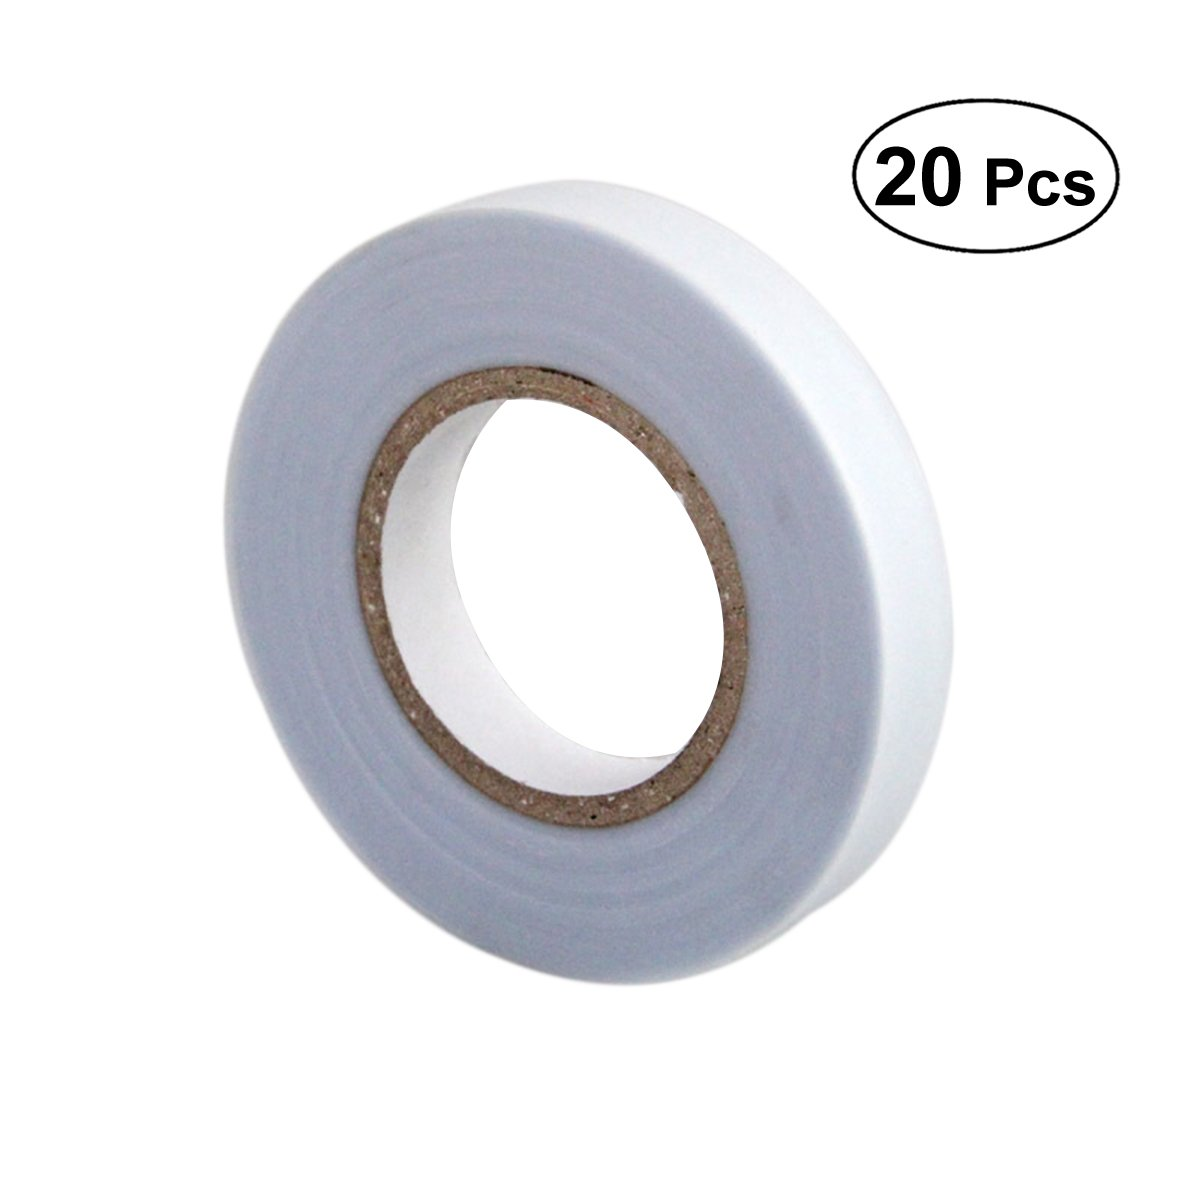 Yardwe Thick Stretch Tie Tape Adjustable Garden Tie Tape for Planting(White)